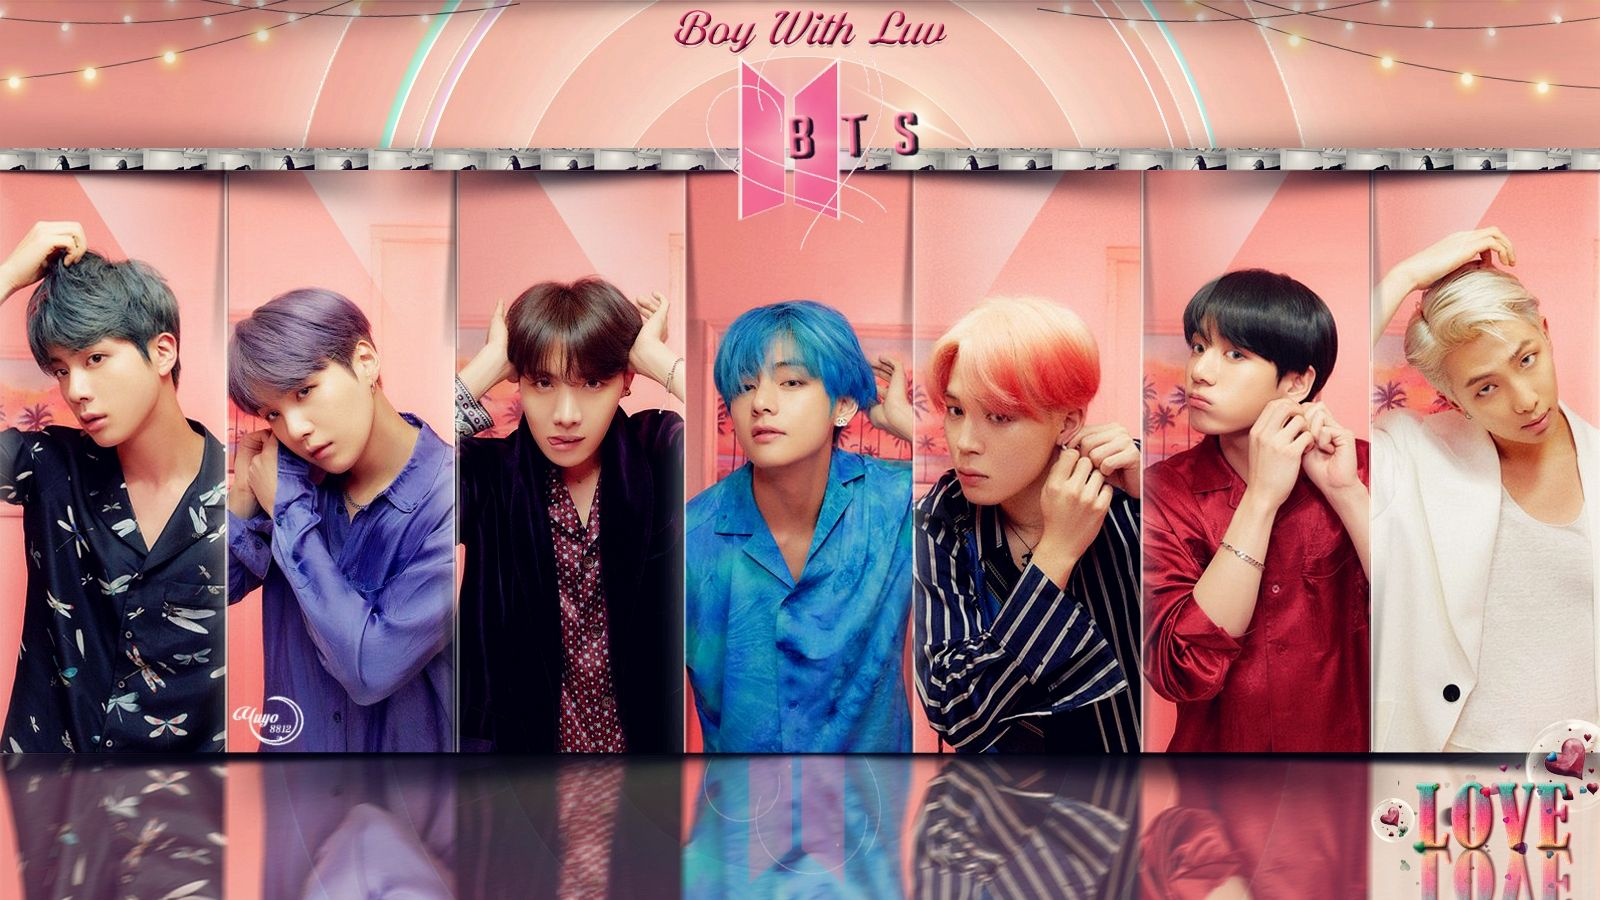 Bts Boy With Love Wallpapers Top Free Bts Boy With Love